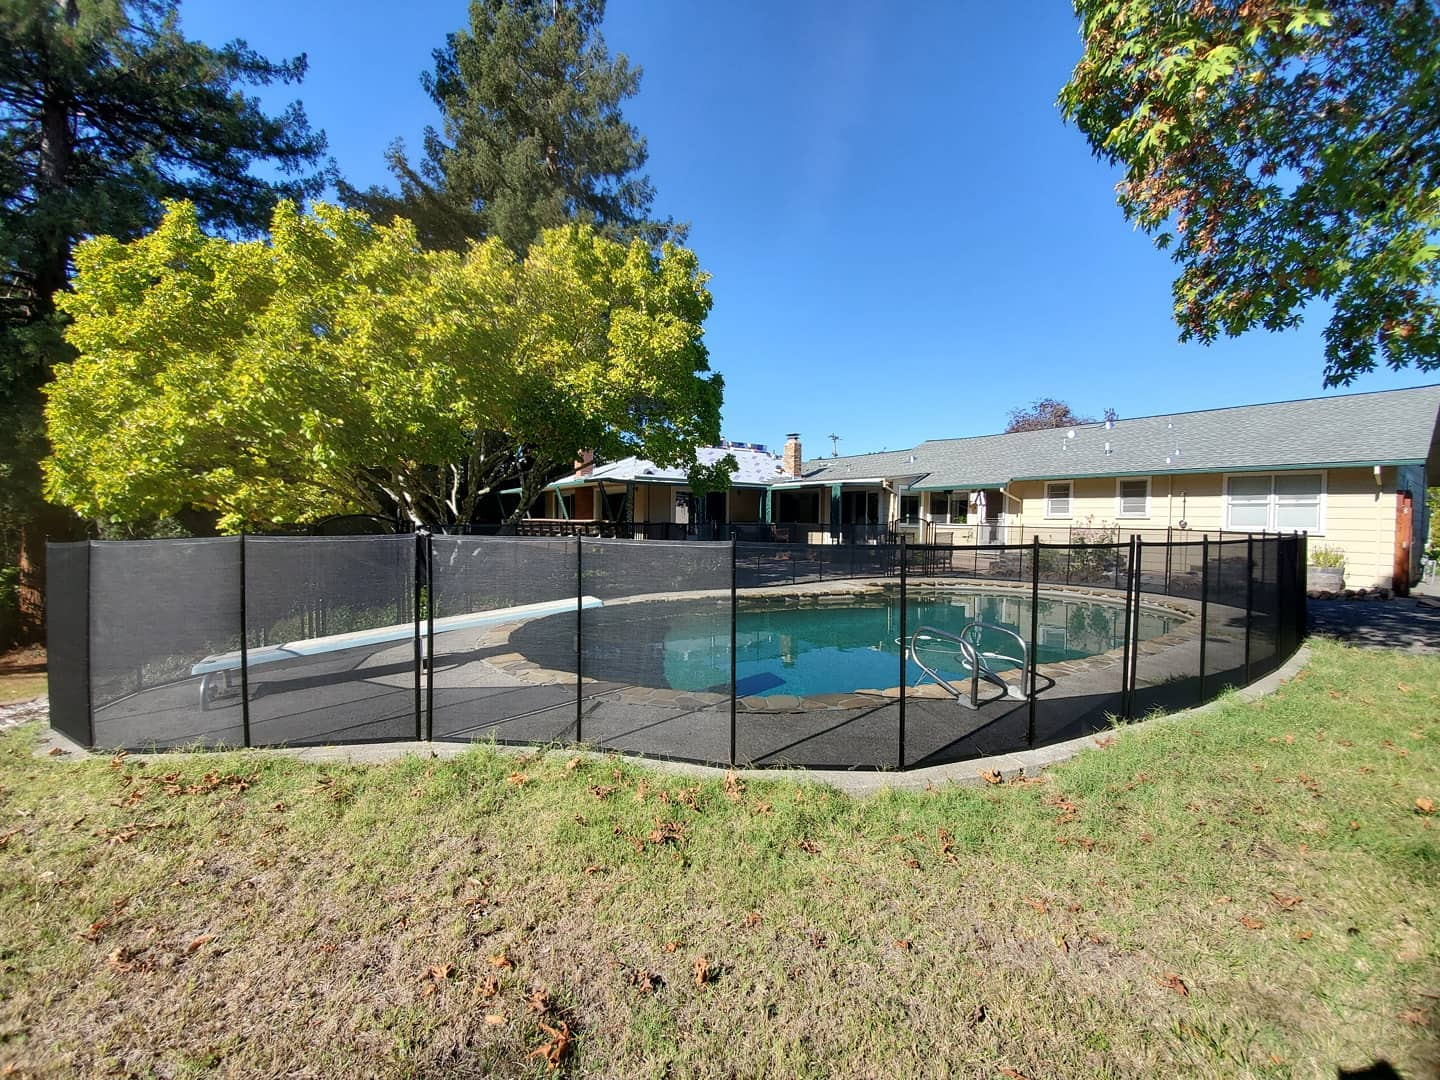 child pool safety fence installer Concord, CA